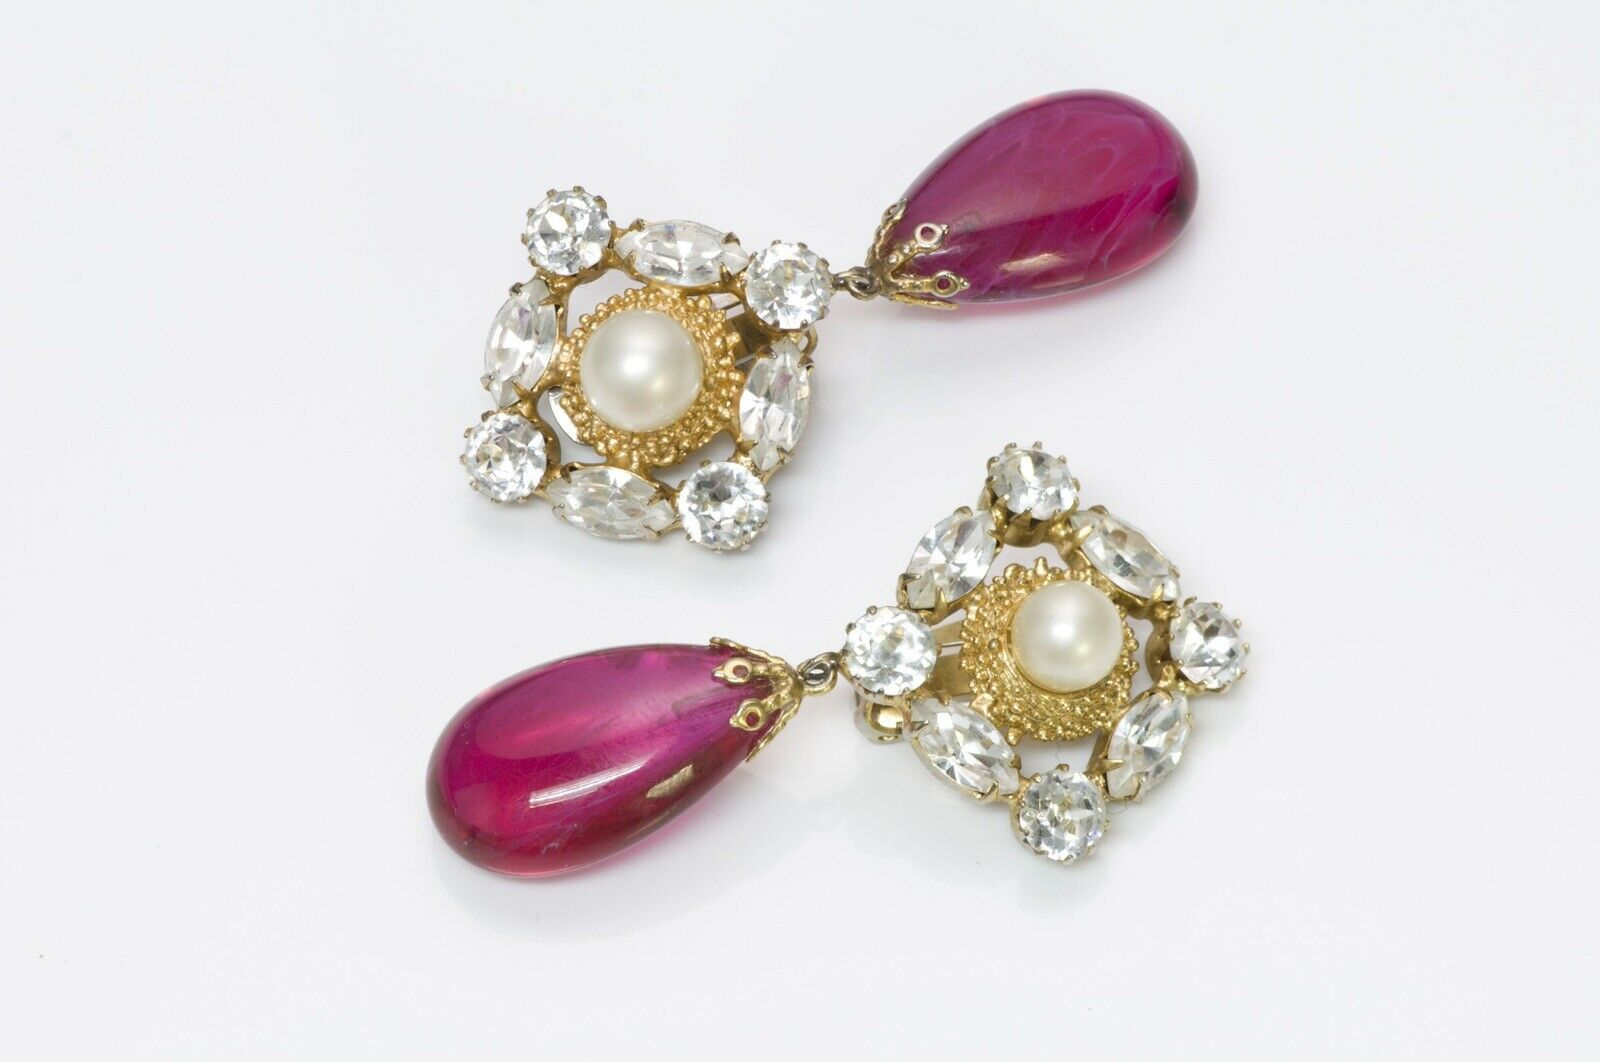 Arnold Scaasi Couture Crystal Pink Glass Earrings - image 2